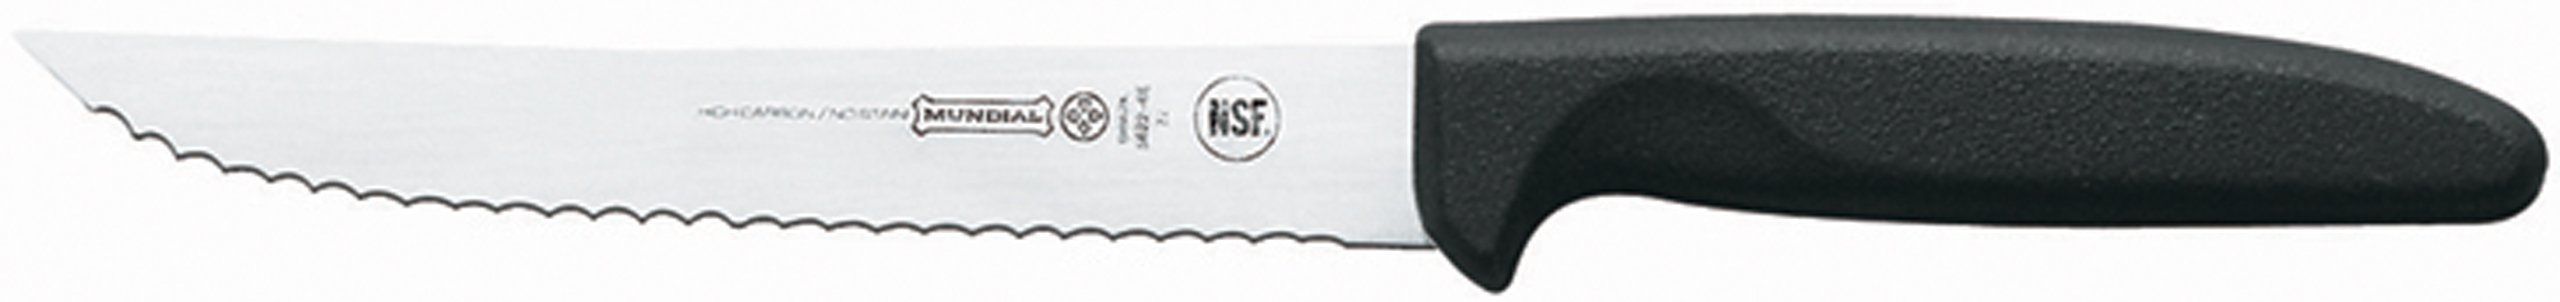 Mundial 5622-6E 6-Inch Slicing Serrated Edge Utility Knife, Black 1 Utility Knife Serrated edge bar knife Handle contains built in anti microbial protection